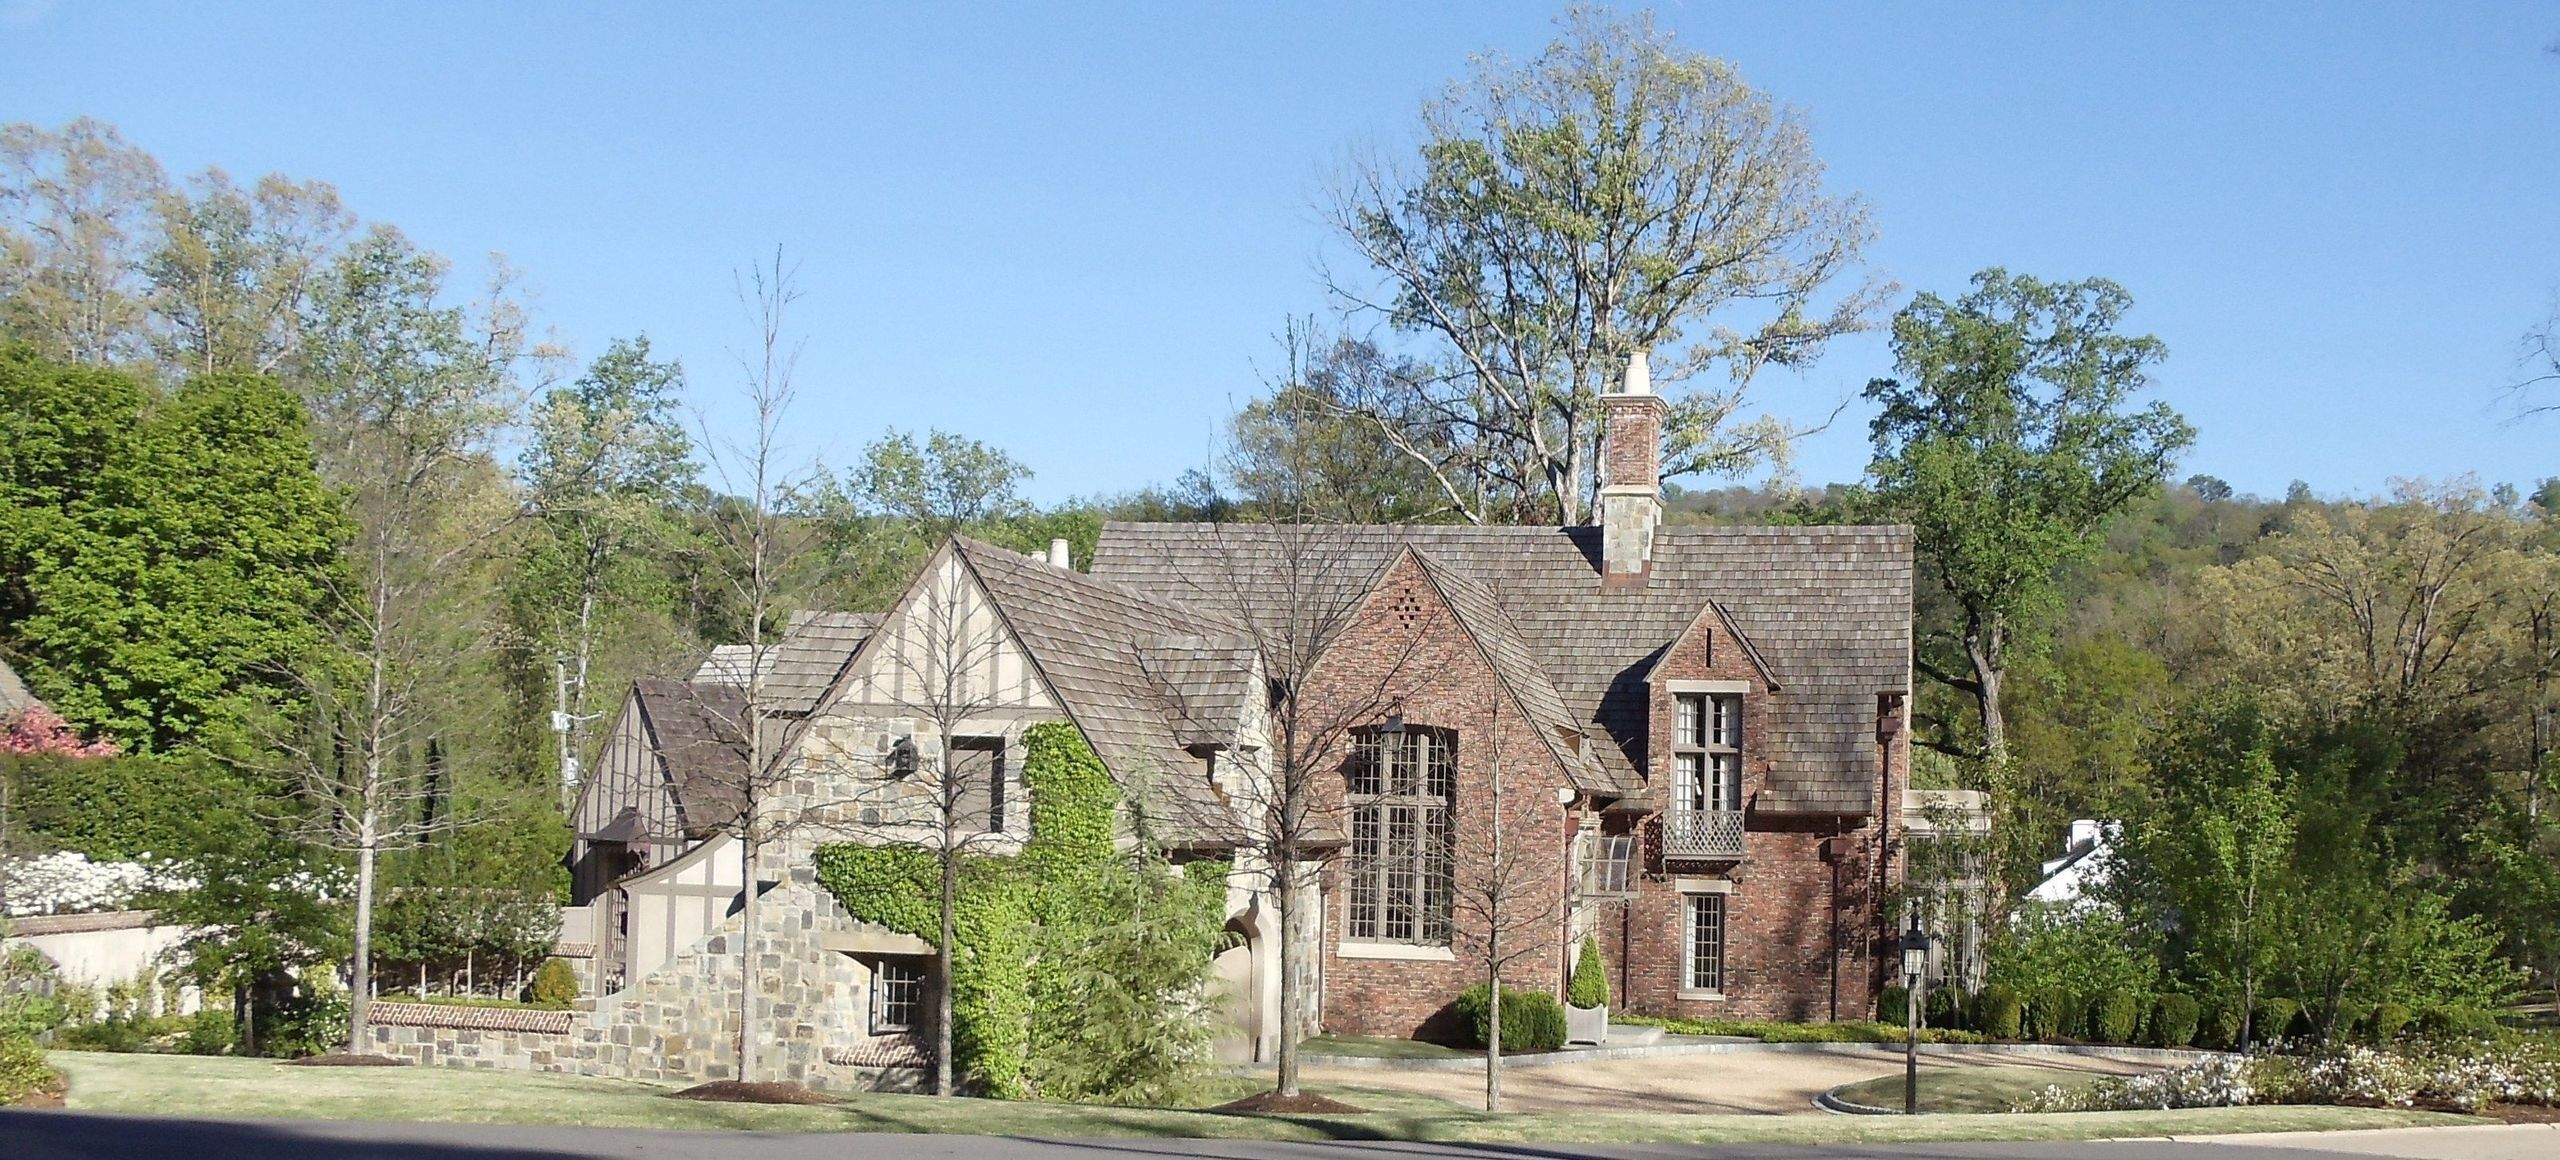 Beautiful Mountain Brook Alabama Tudor w/ angles image